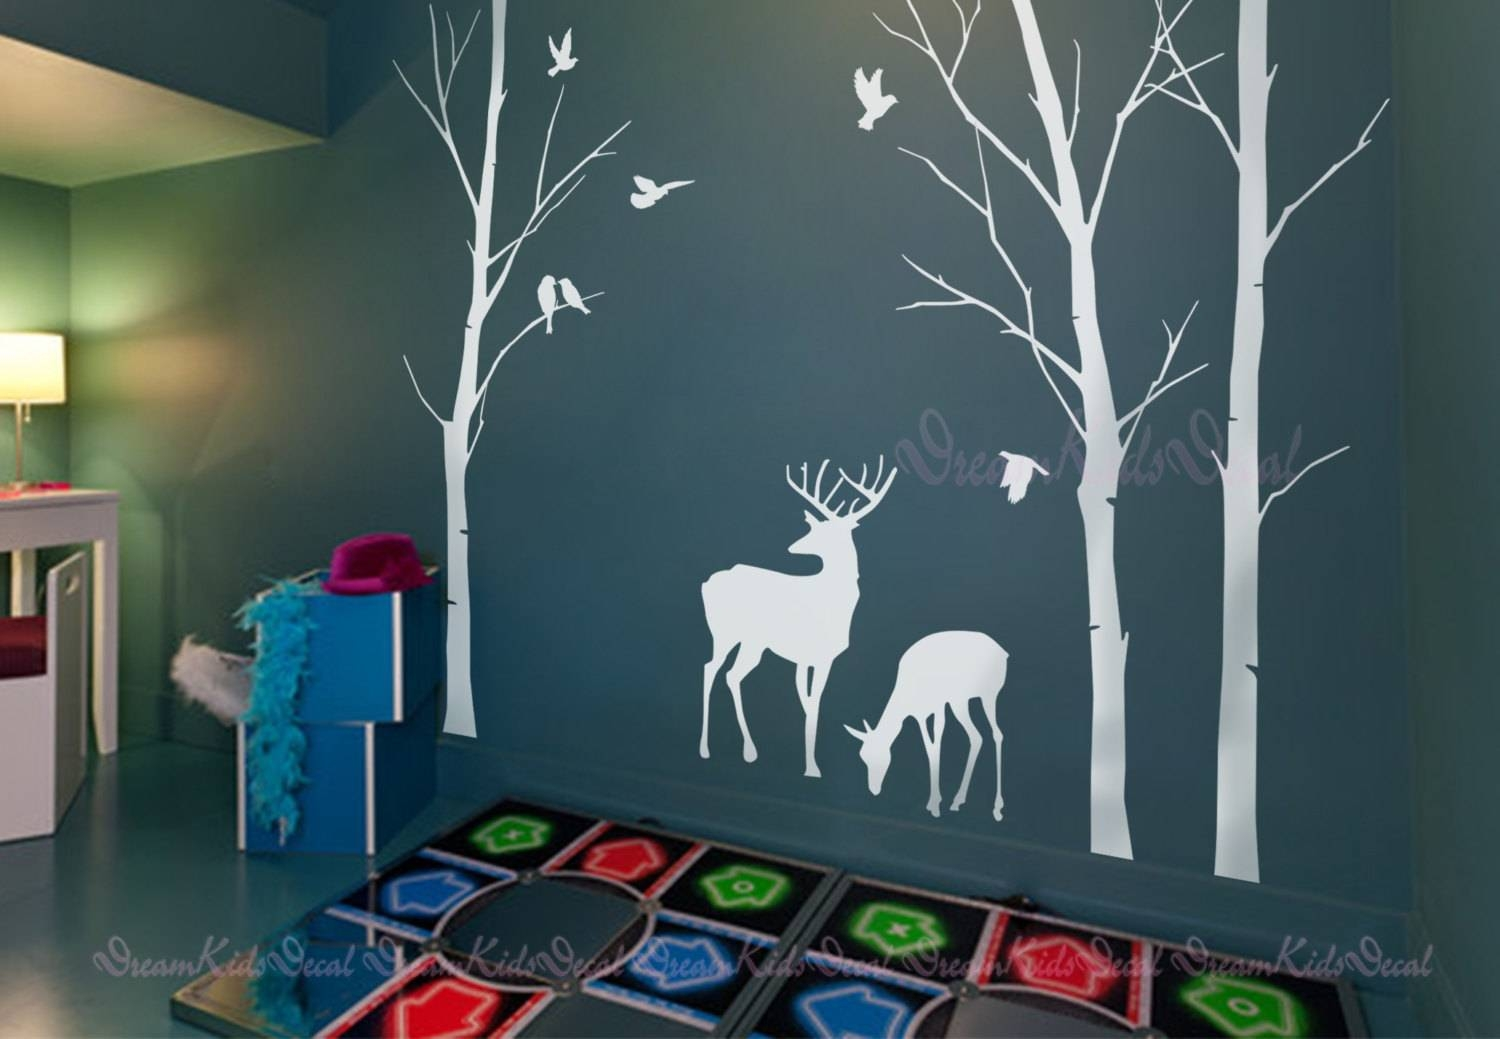 Family Tree Wall Art Bed Bath And Beyond | Wallartideas For Latest Bed Bath And Beyond 3d Wall Art (View 8 of 20)